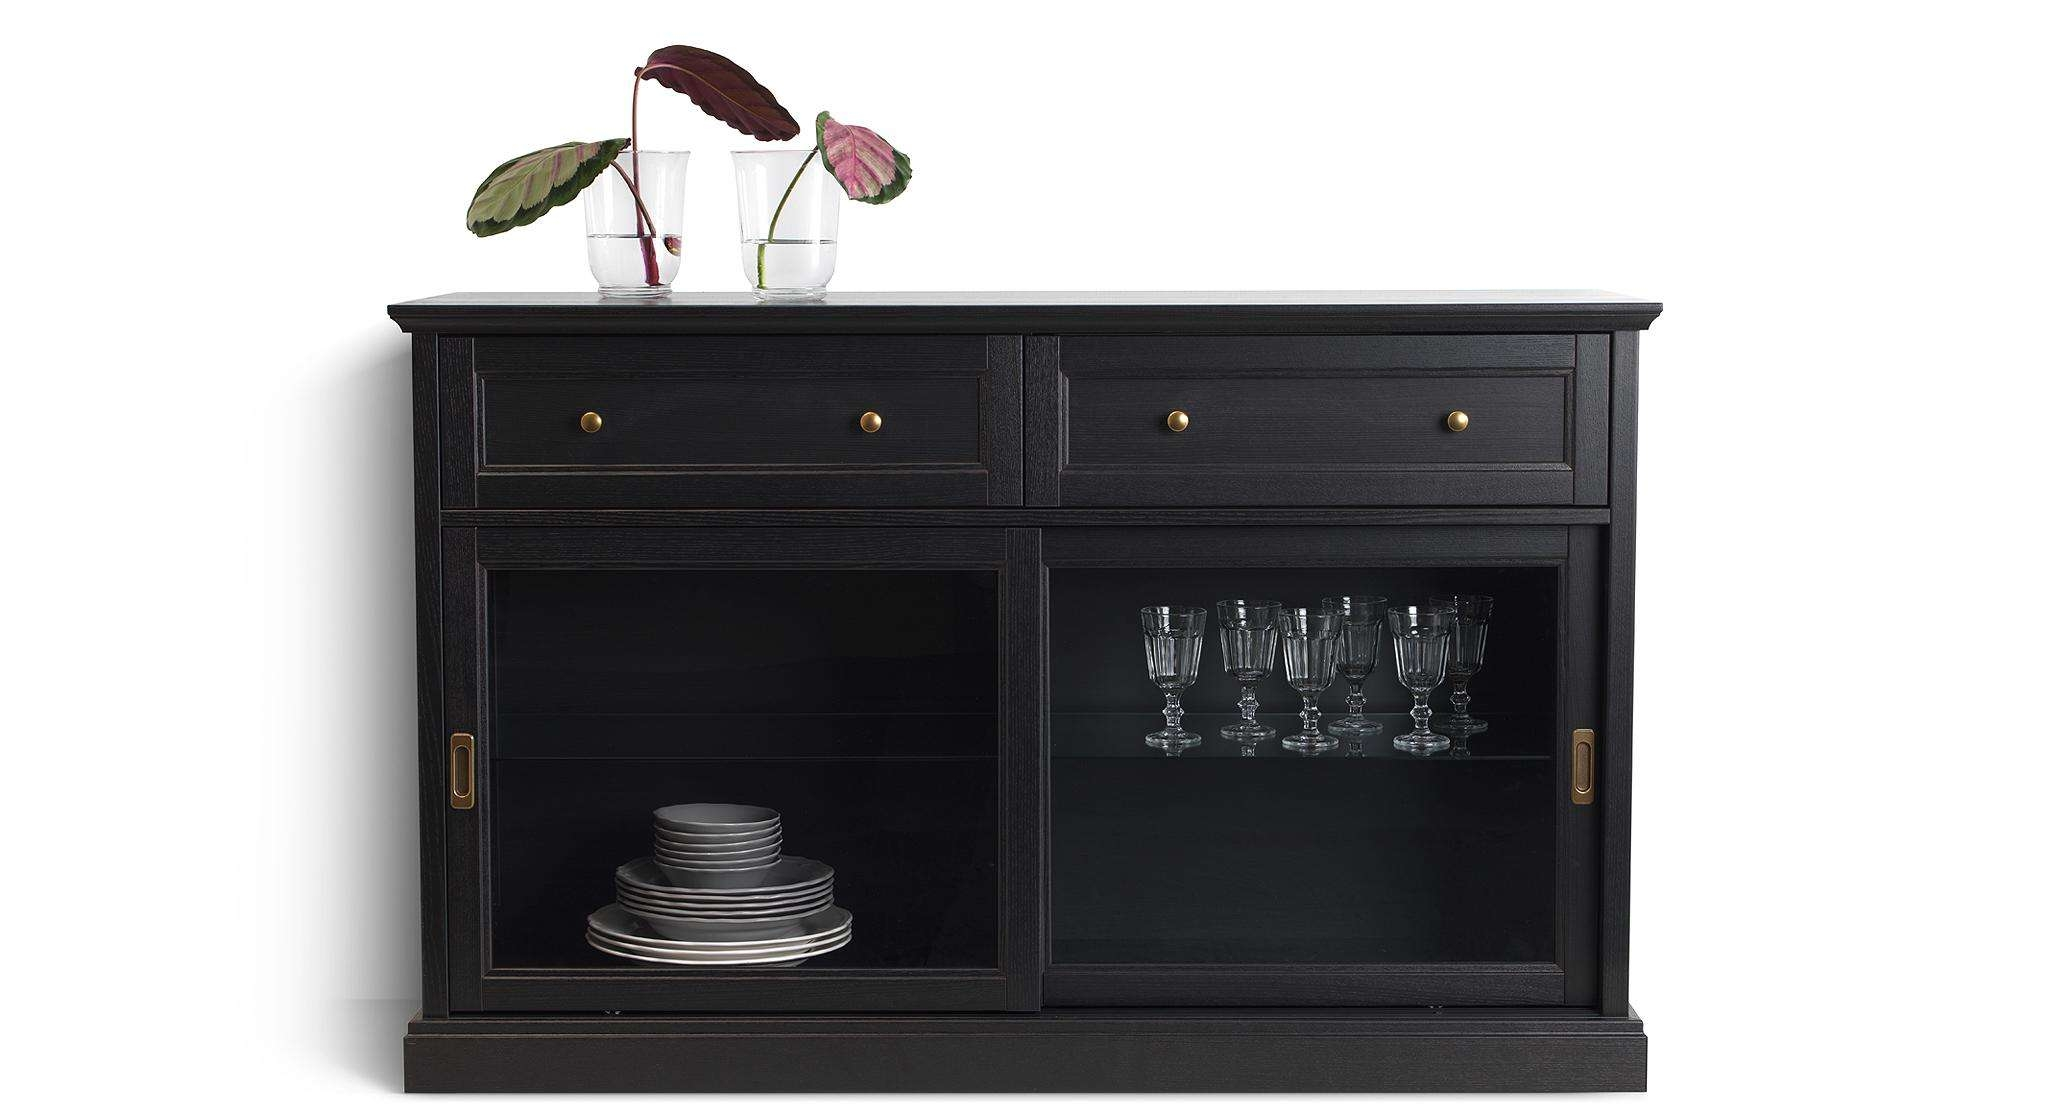 Sideboards & Buffet Cabinets | Ikea With Sideboards With Drawers (View 17 of 20)